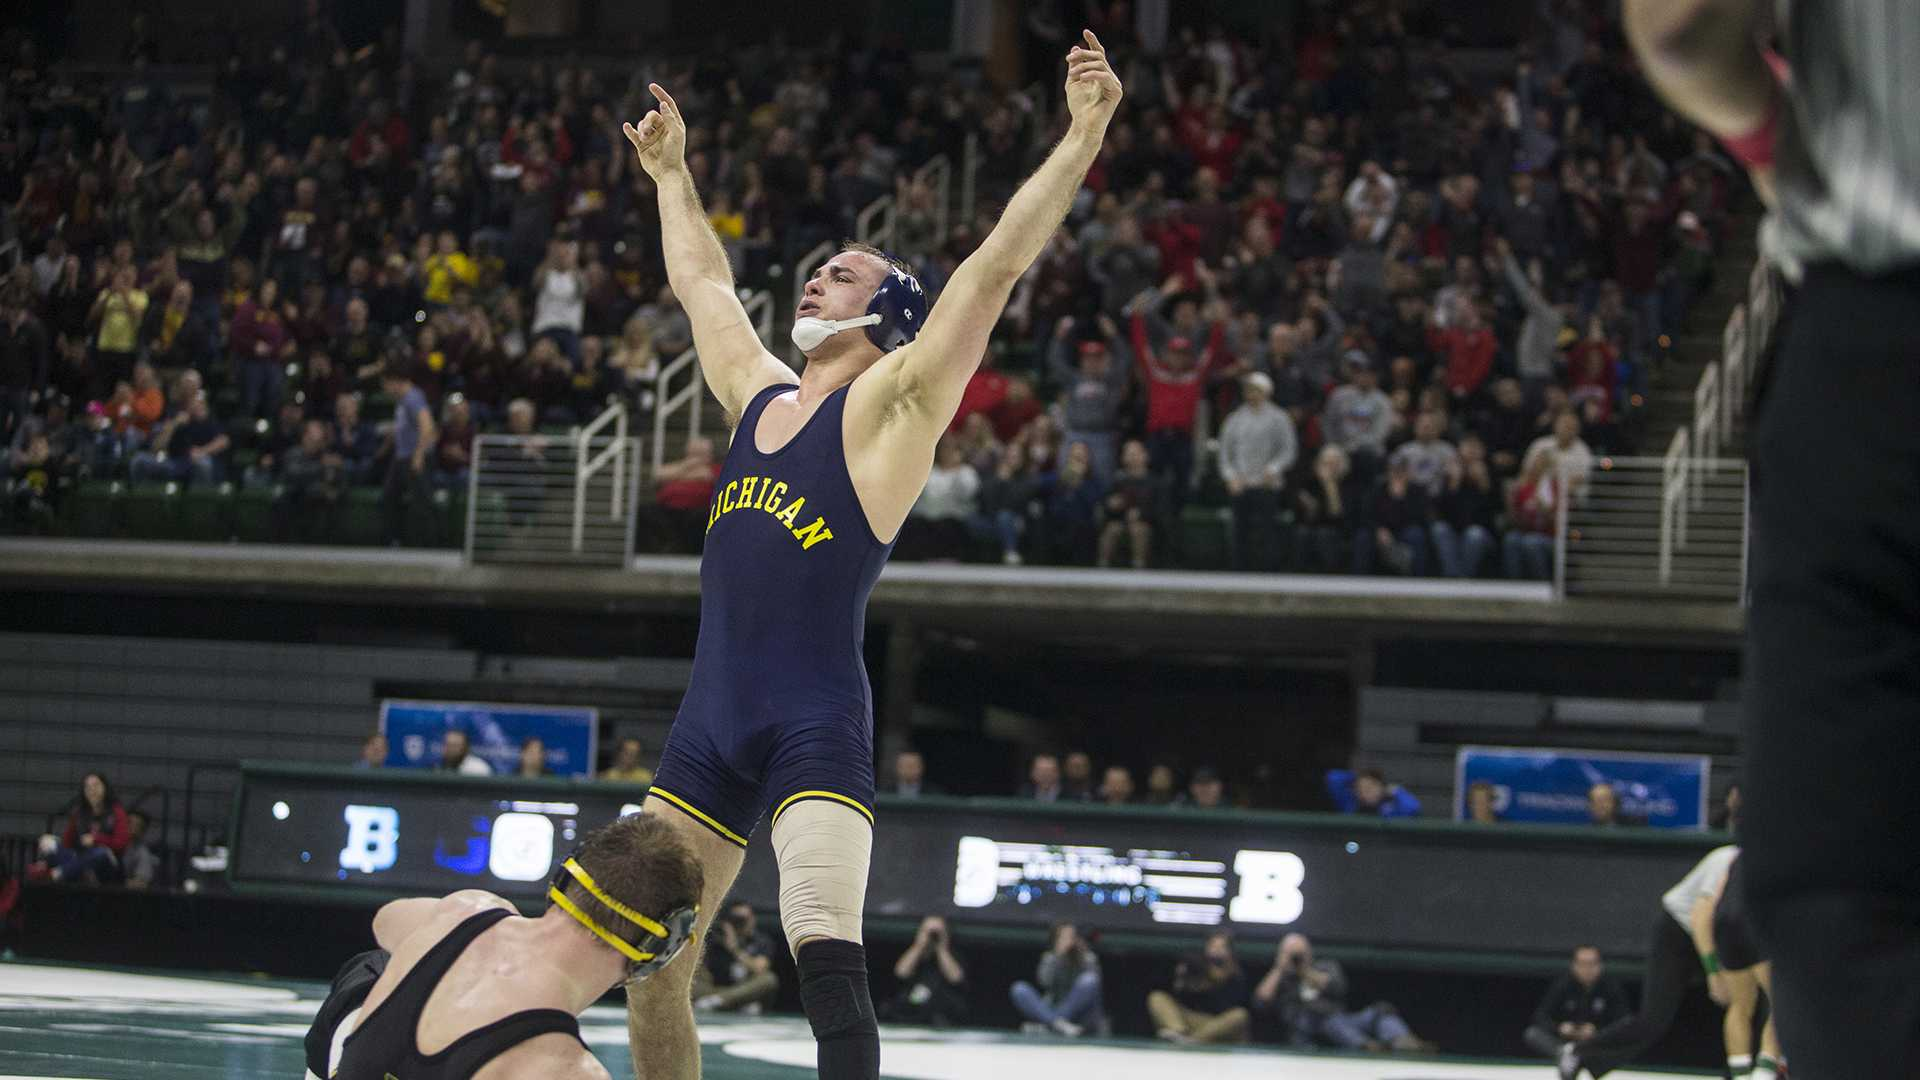 Michigan's 165-pound Logan Massa celebrates a victory over Iowa's Alex Marinelli during Big Ten Wrestling Championships Day 1 at the Breslin Student Events Center in East Lansing, MI on Saturday, Mar. 3, 2018. (Ben Allan Smith/The Daily Iowan)